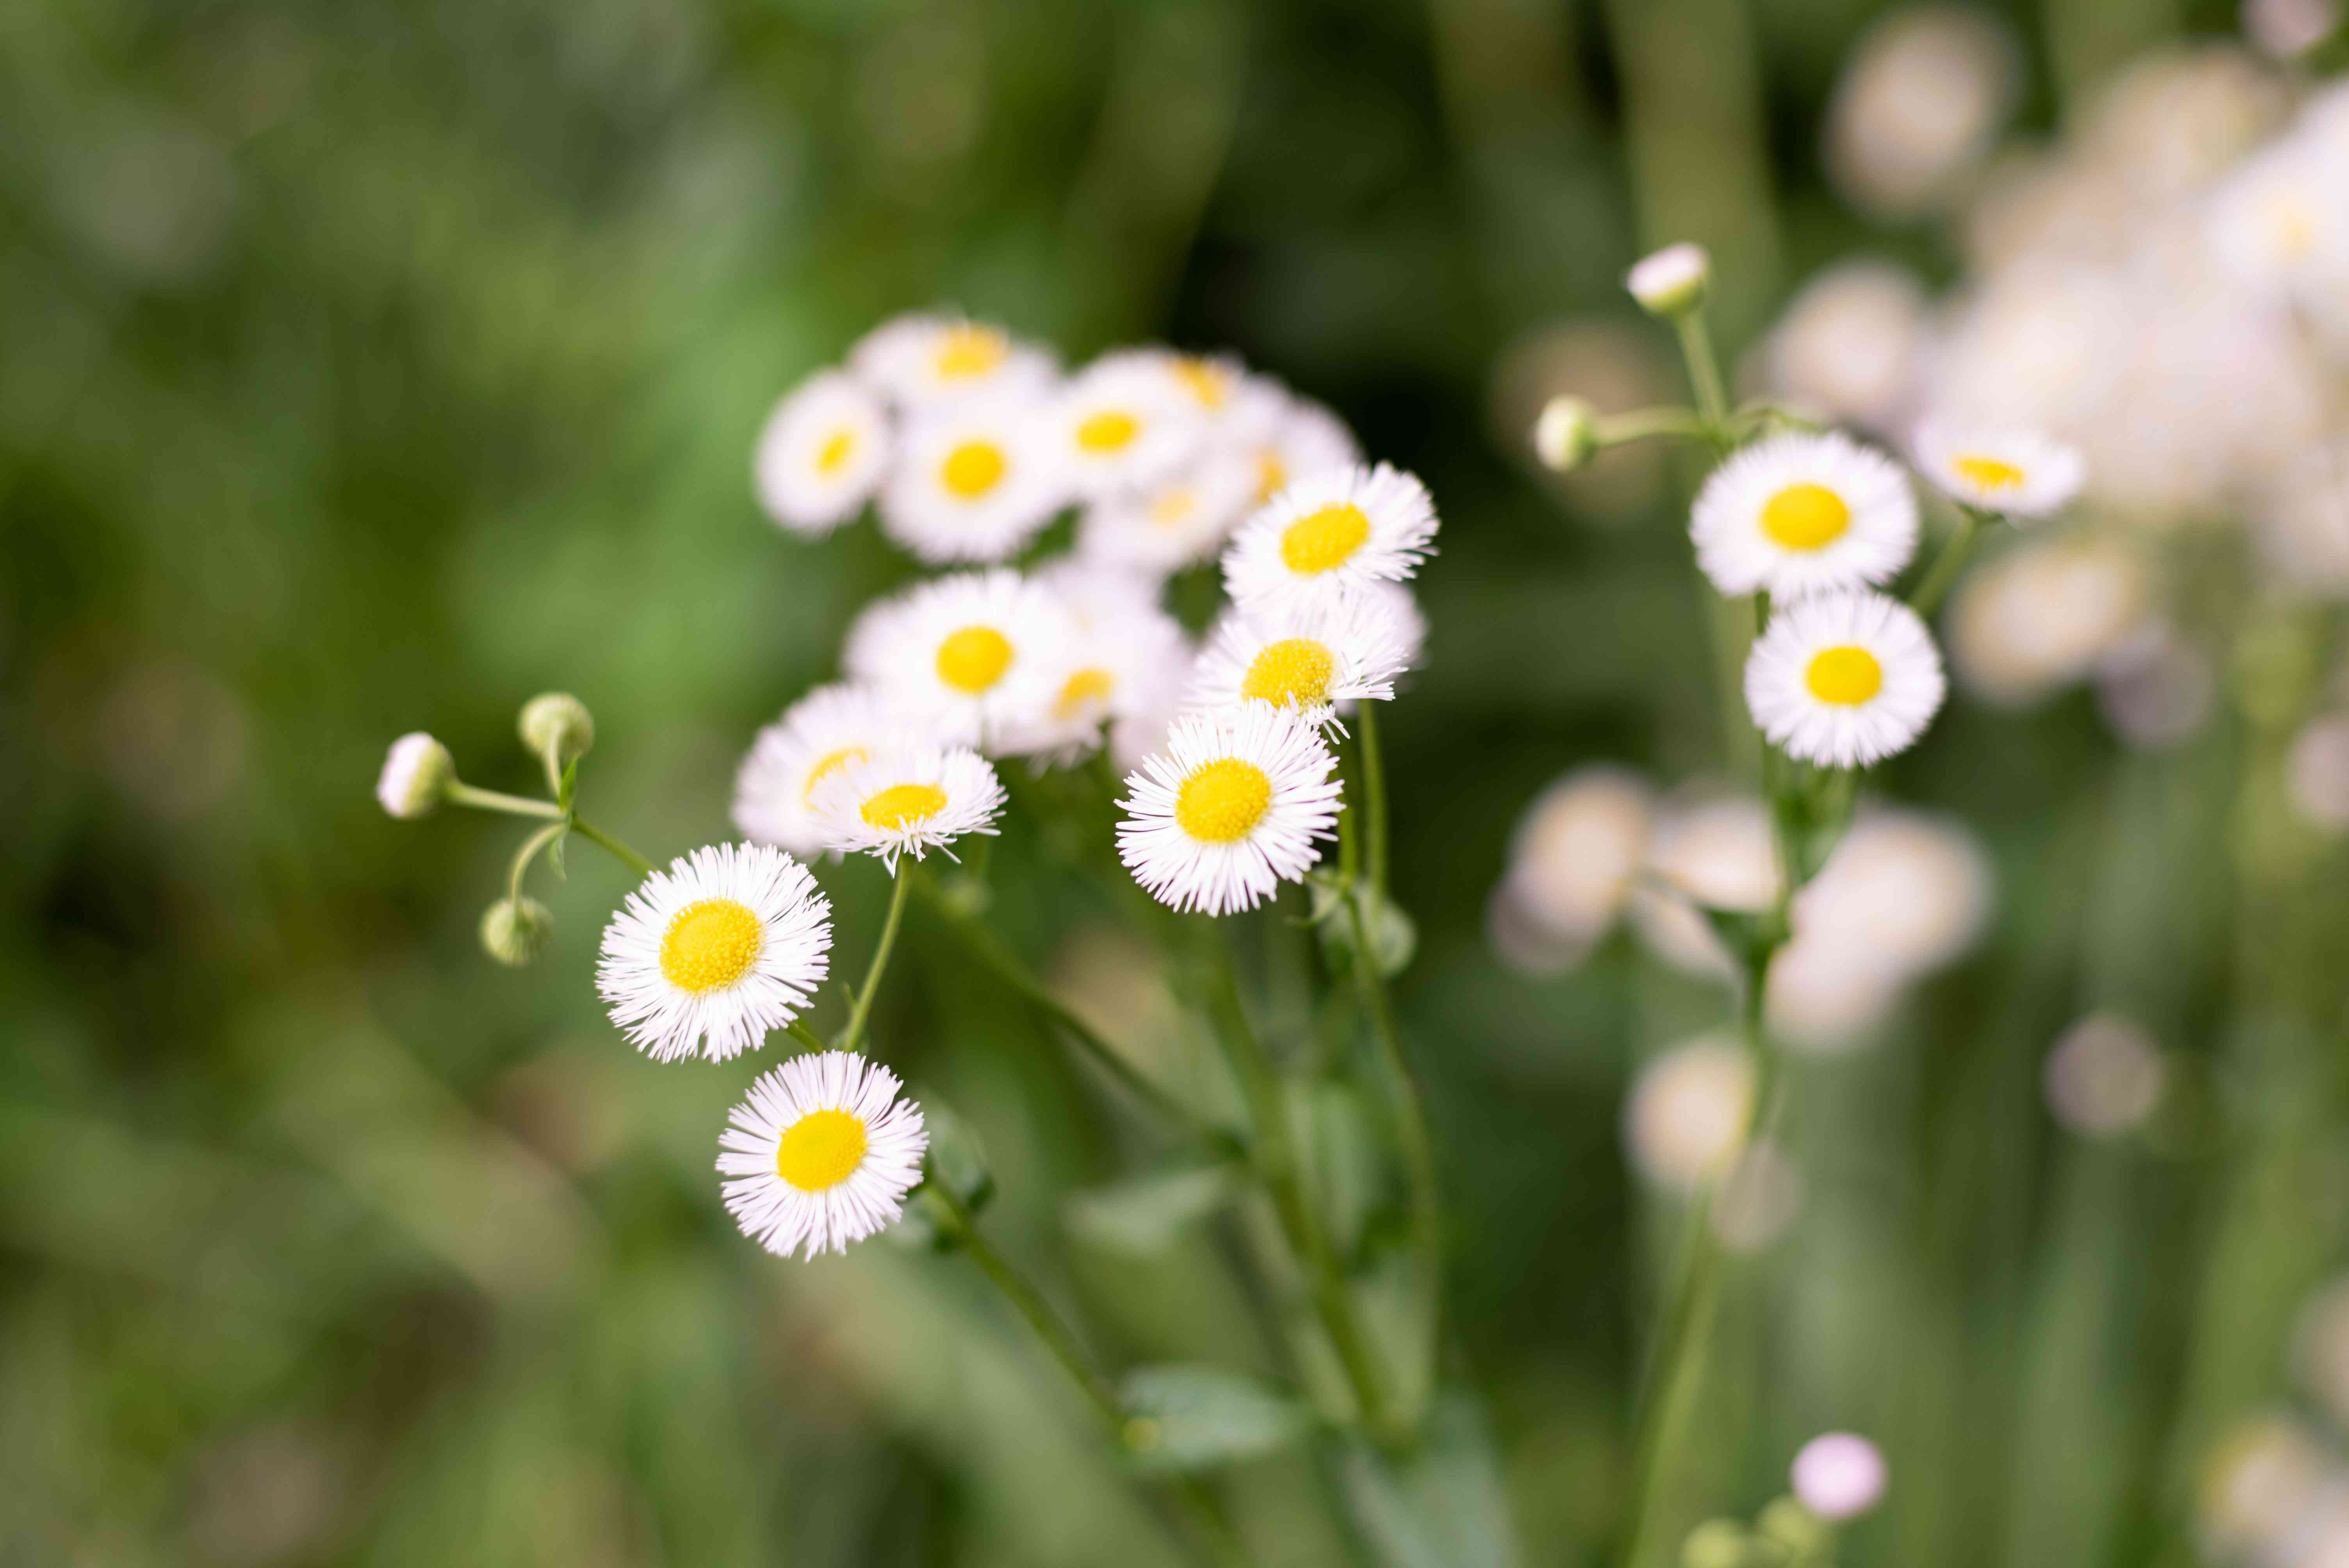 Mexican fleabane with small white flowers with yellow centers and buds on stems